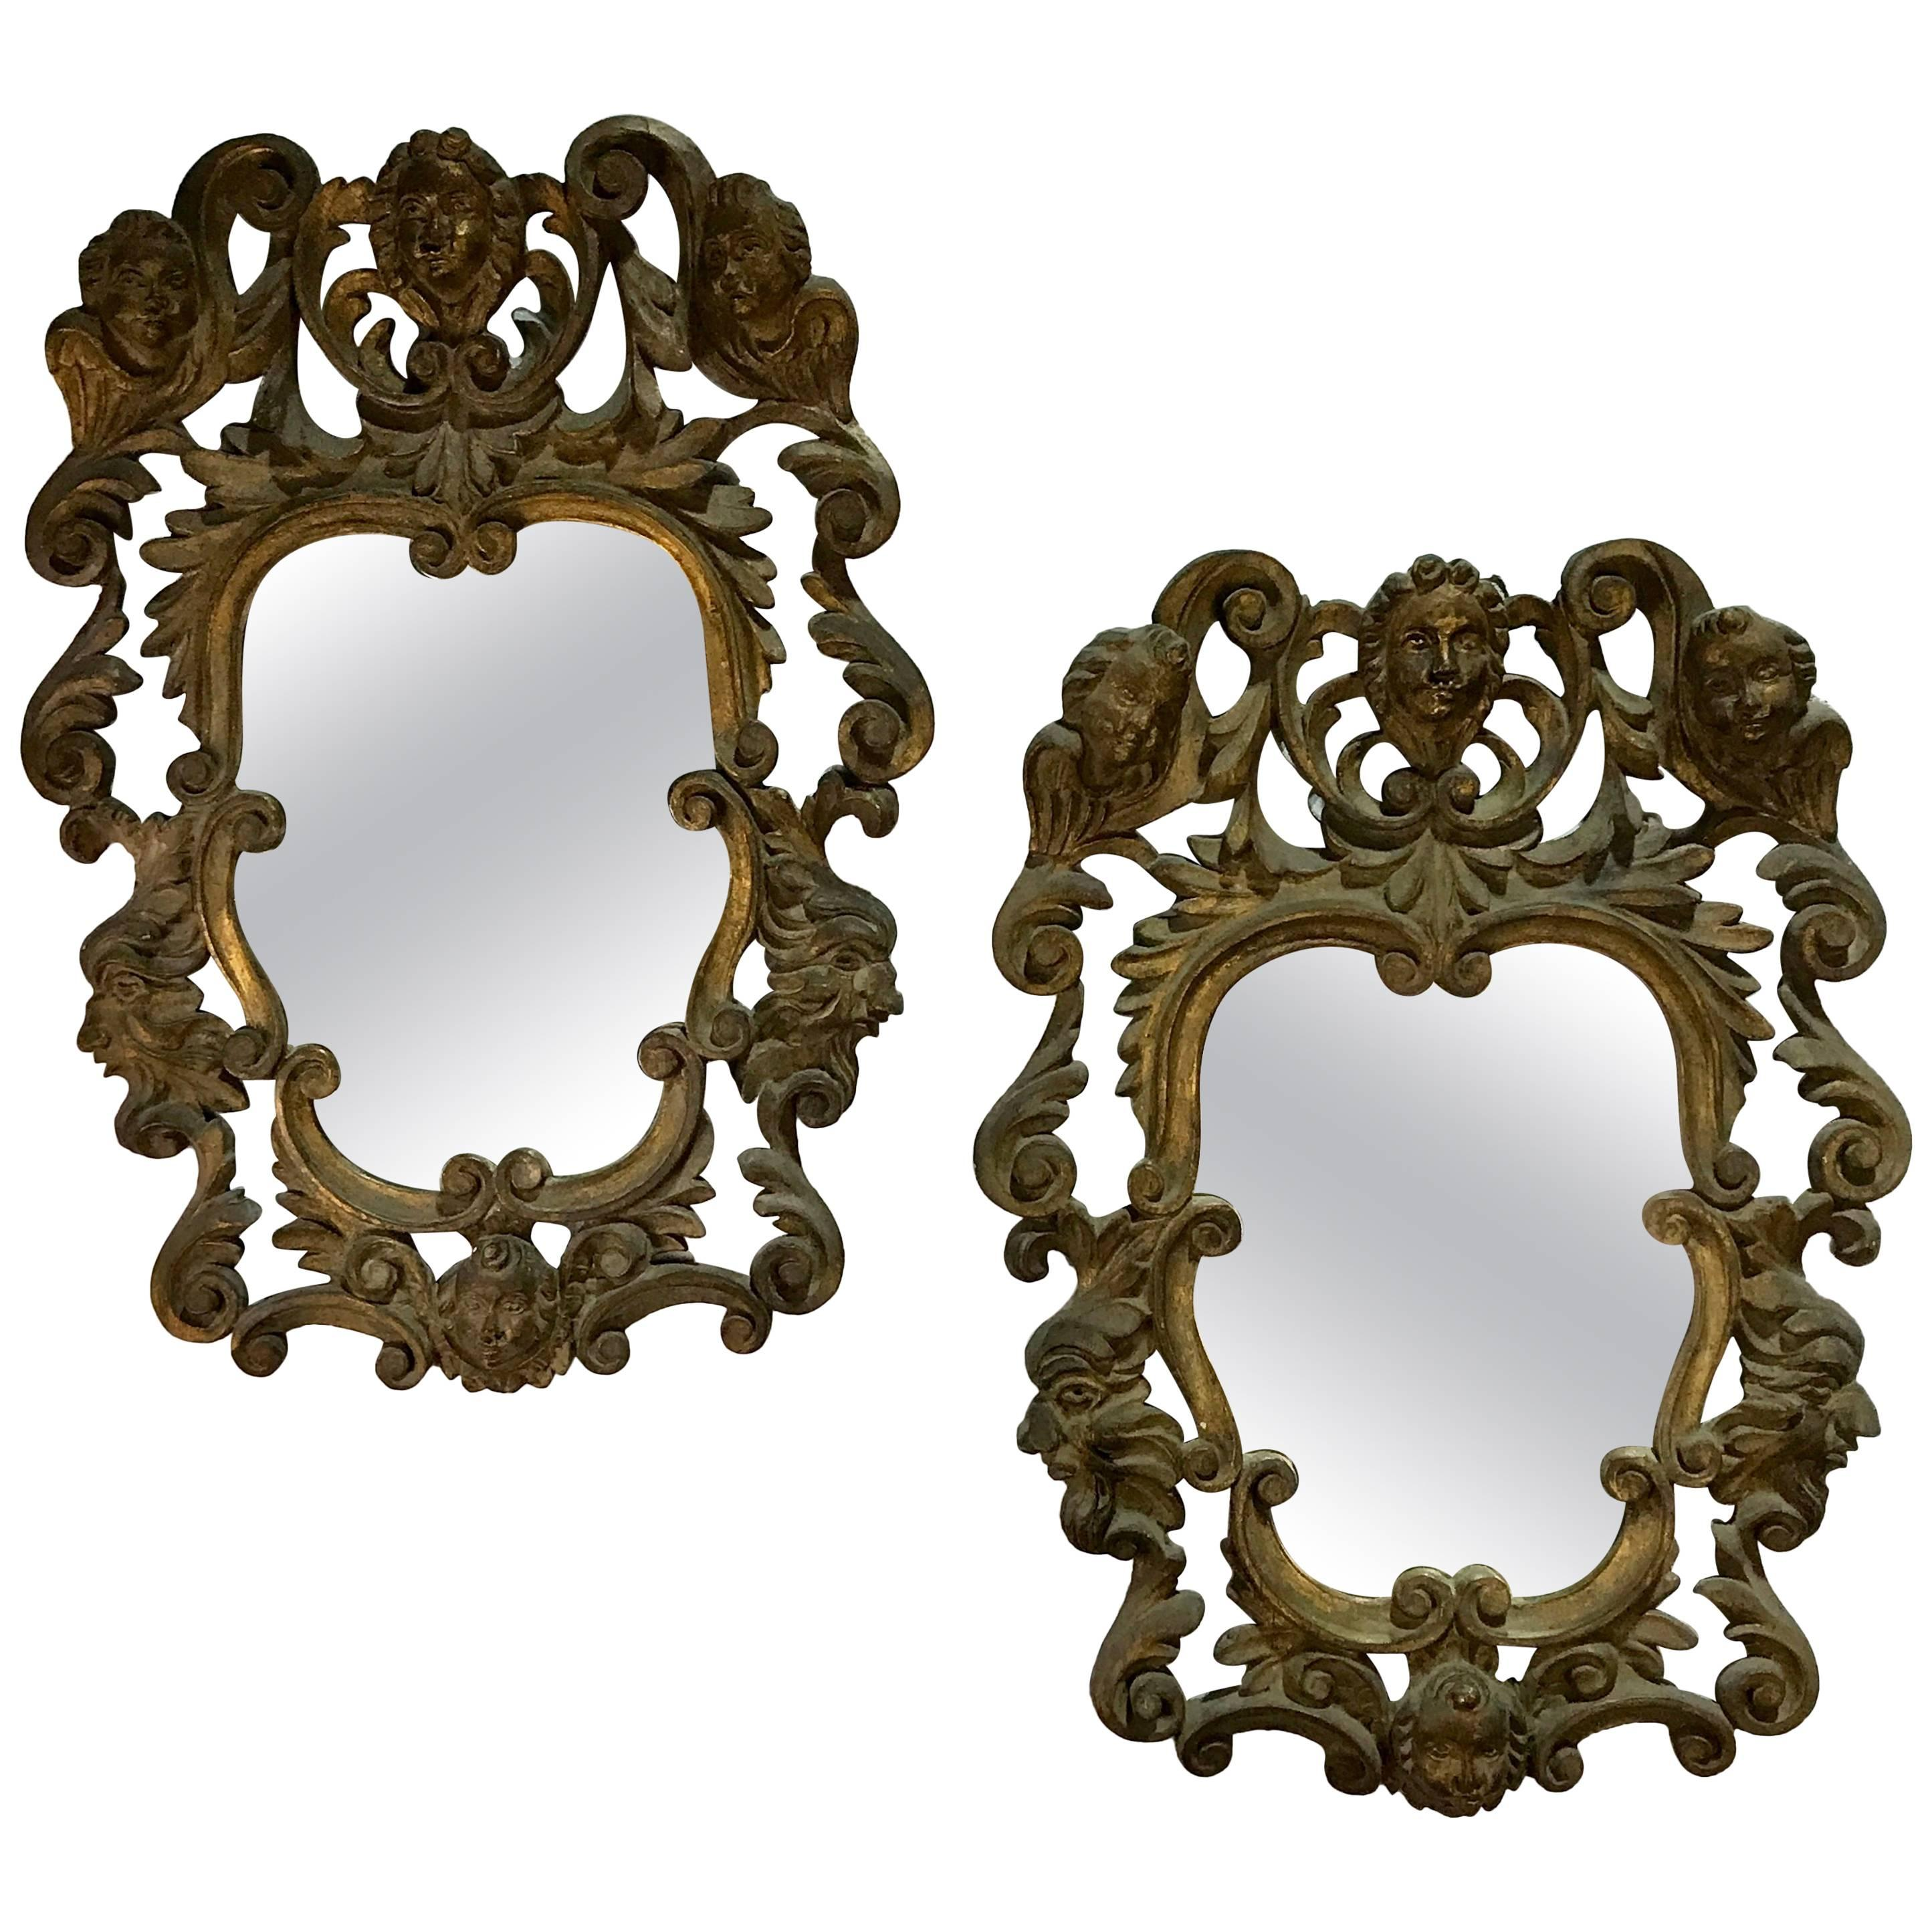 Pair of Italian Baroque Carved Wood Mirrors